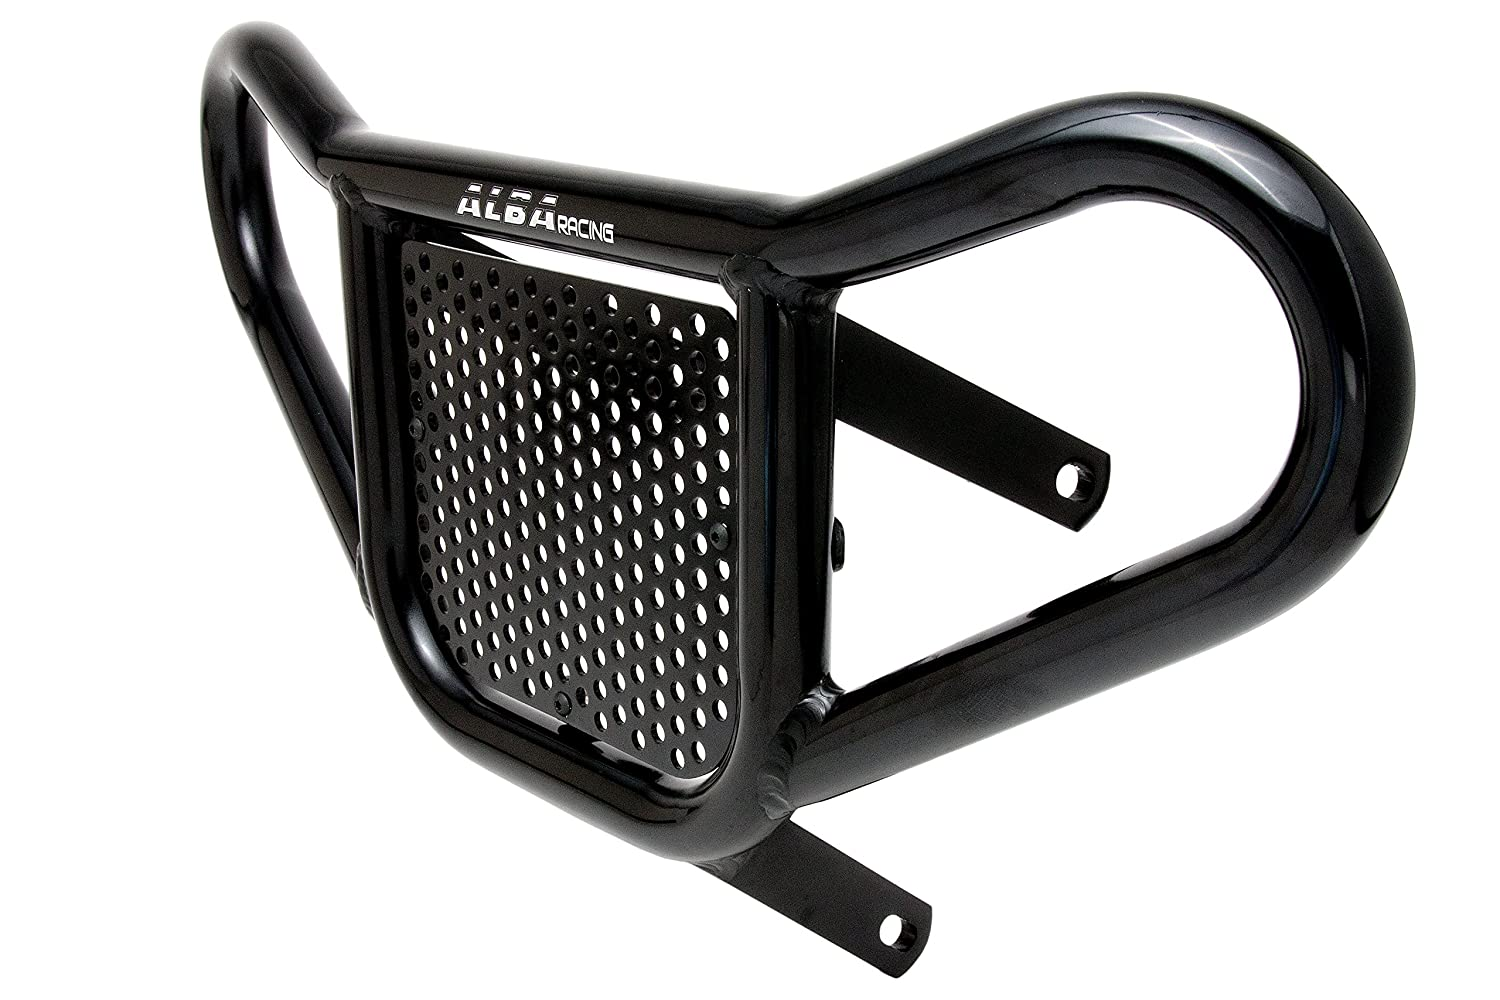 Yamaha YFZ 450 Front Bumper Black- 2004-2009 and 2012-2013 Please Carefully Read Fitment Specifications